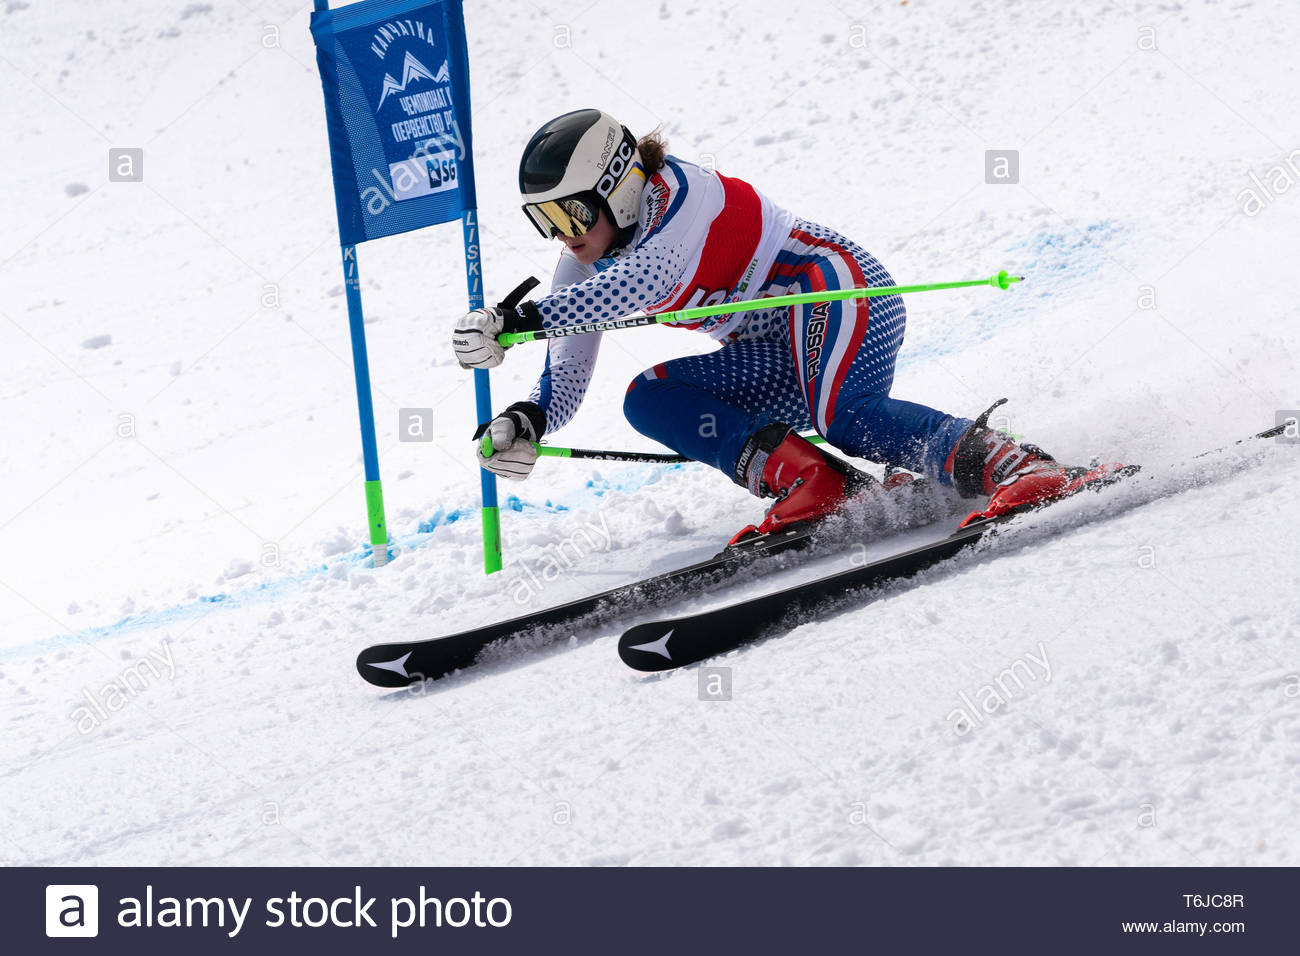 KAMCHATKA PENINSULA, RUSSIAN FEDERATION - APRIL 1, 2019: Mountain skier Khartsyzova Alena (St. Petersburg) skiing down snowy mountain slope. Russian W - Stock Image